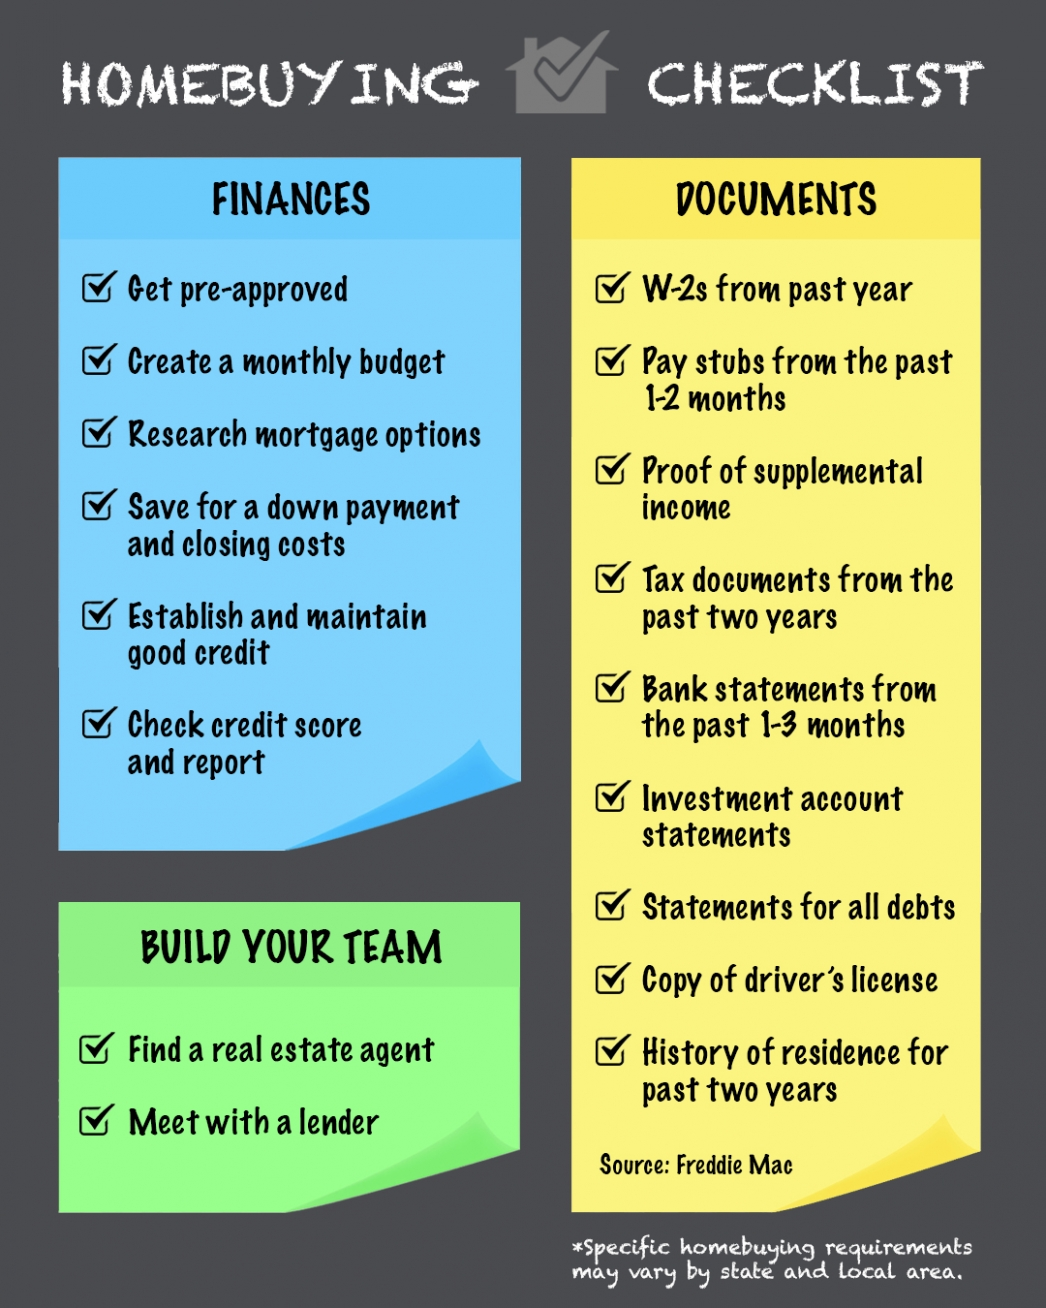 2020 Homebuying Checklist | MyKCM